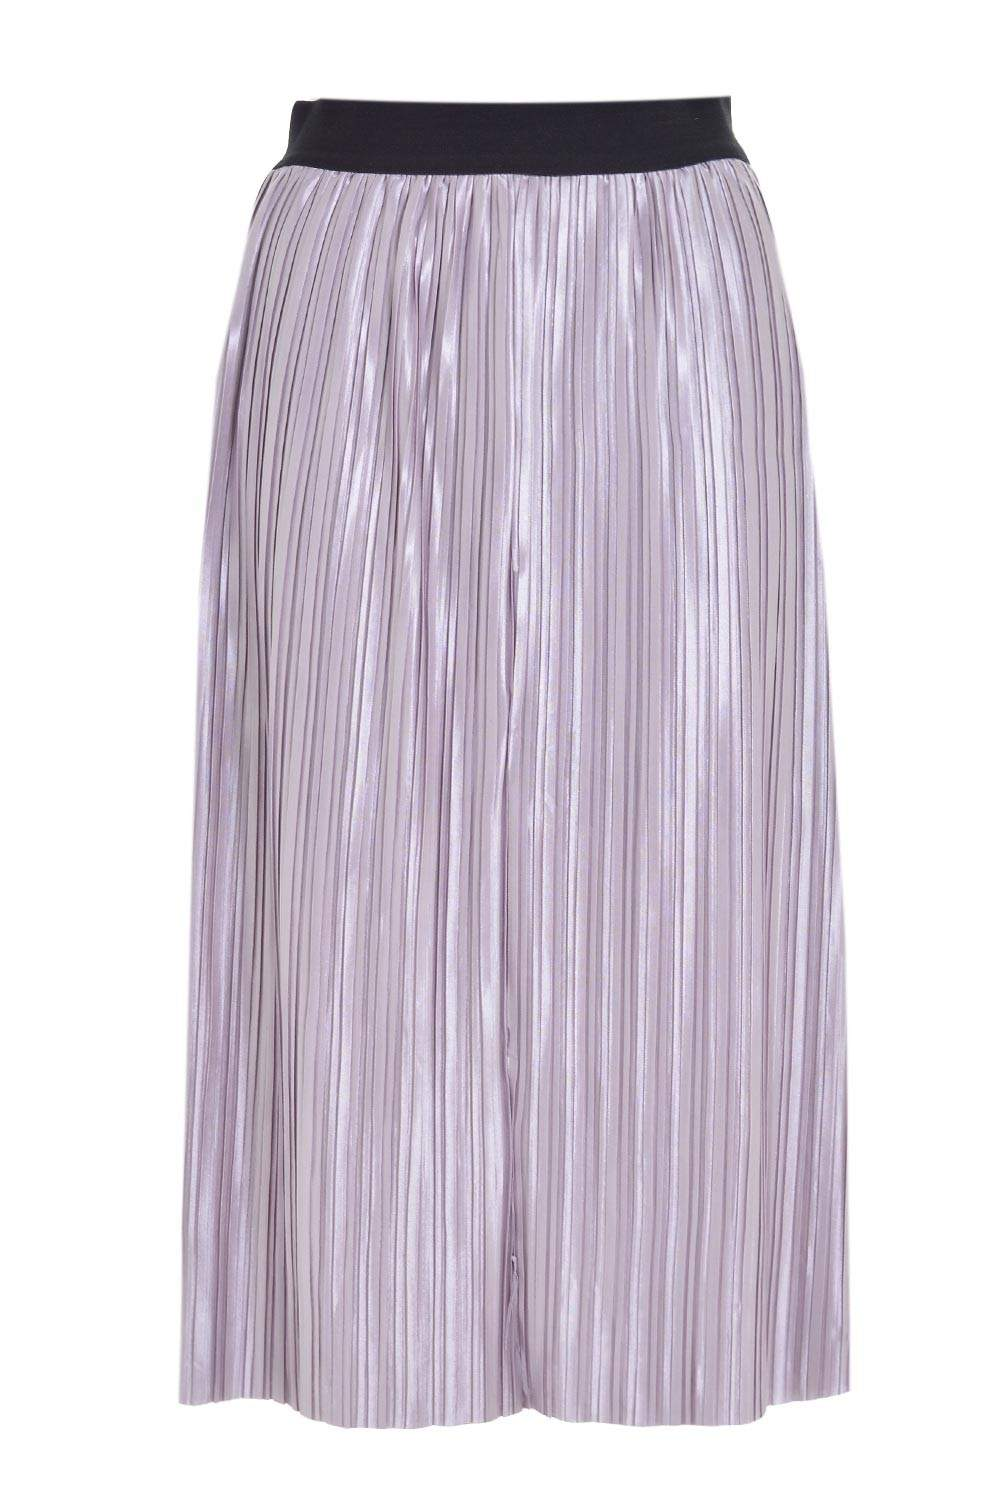 jealousy melody metallic pleated skirt in silver iclothing